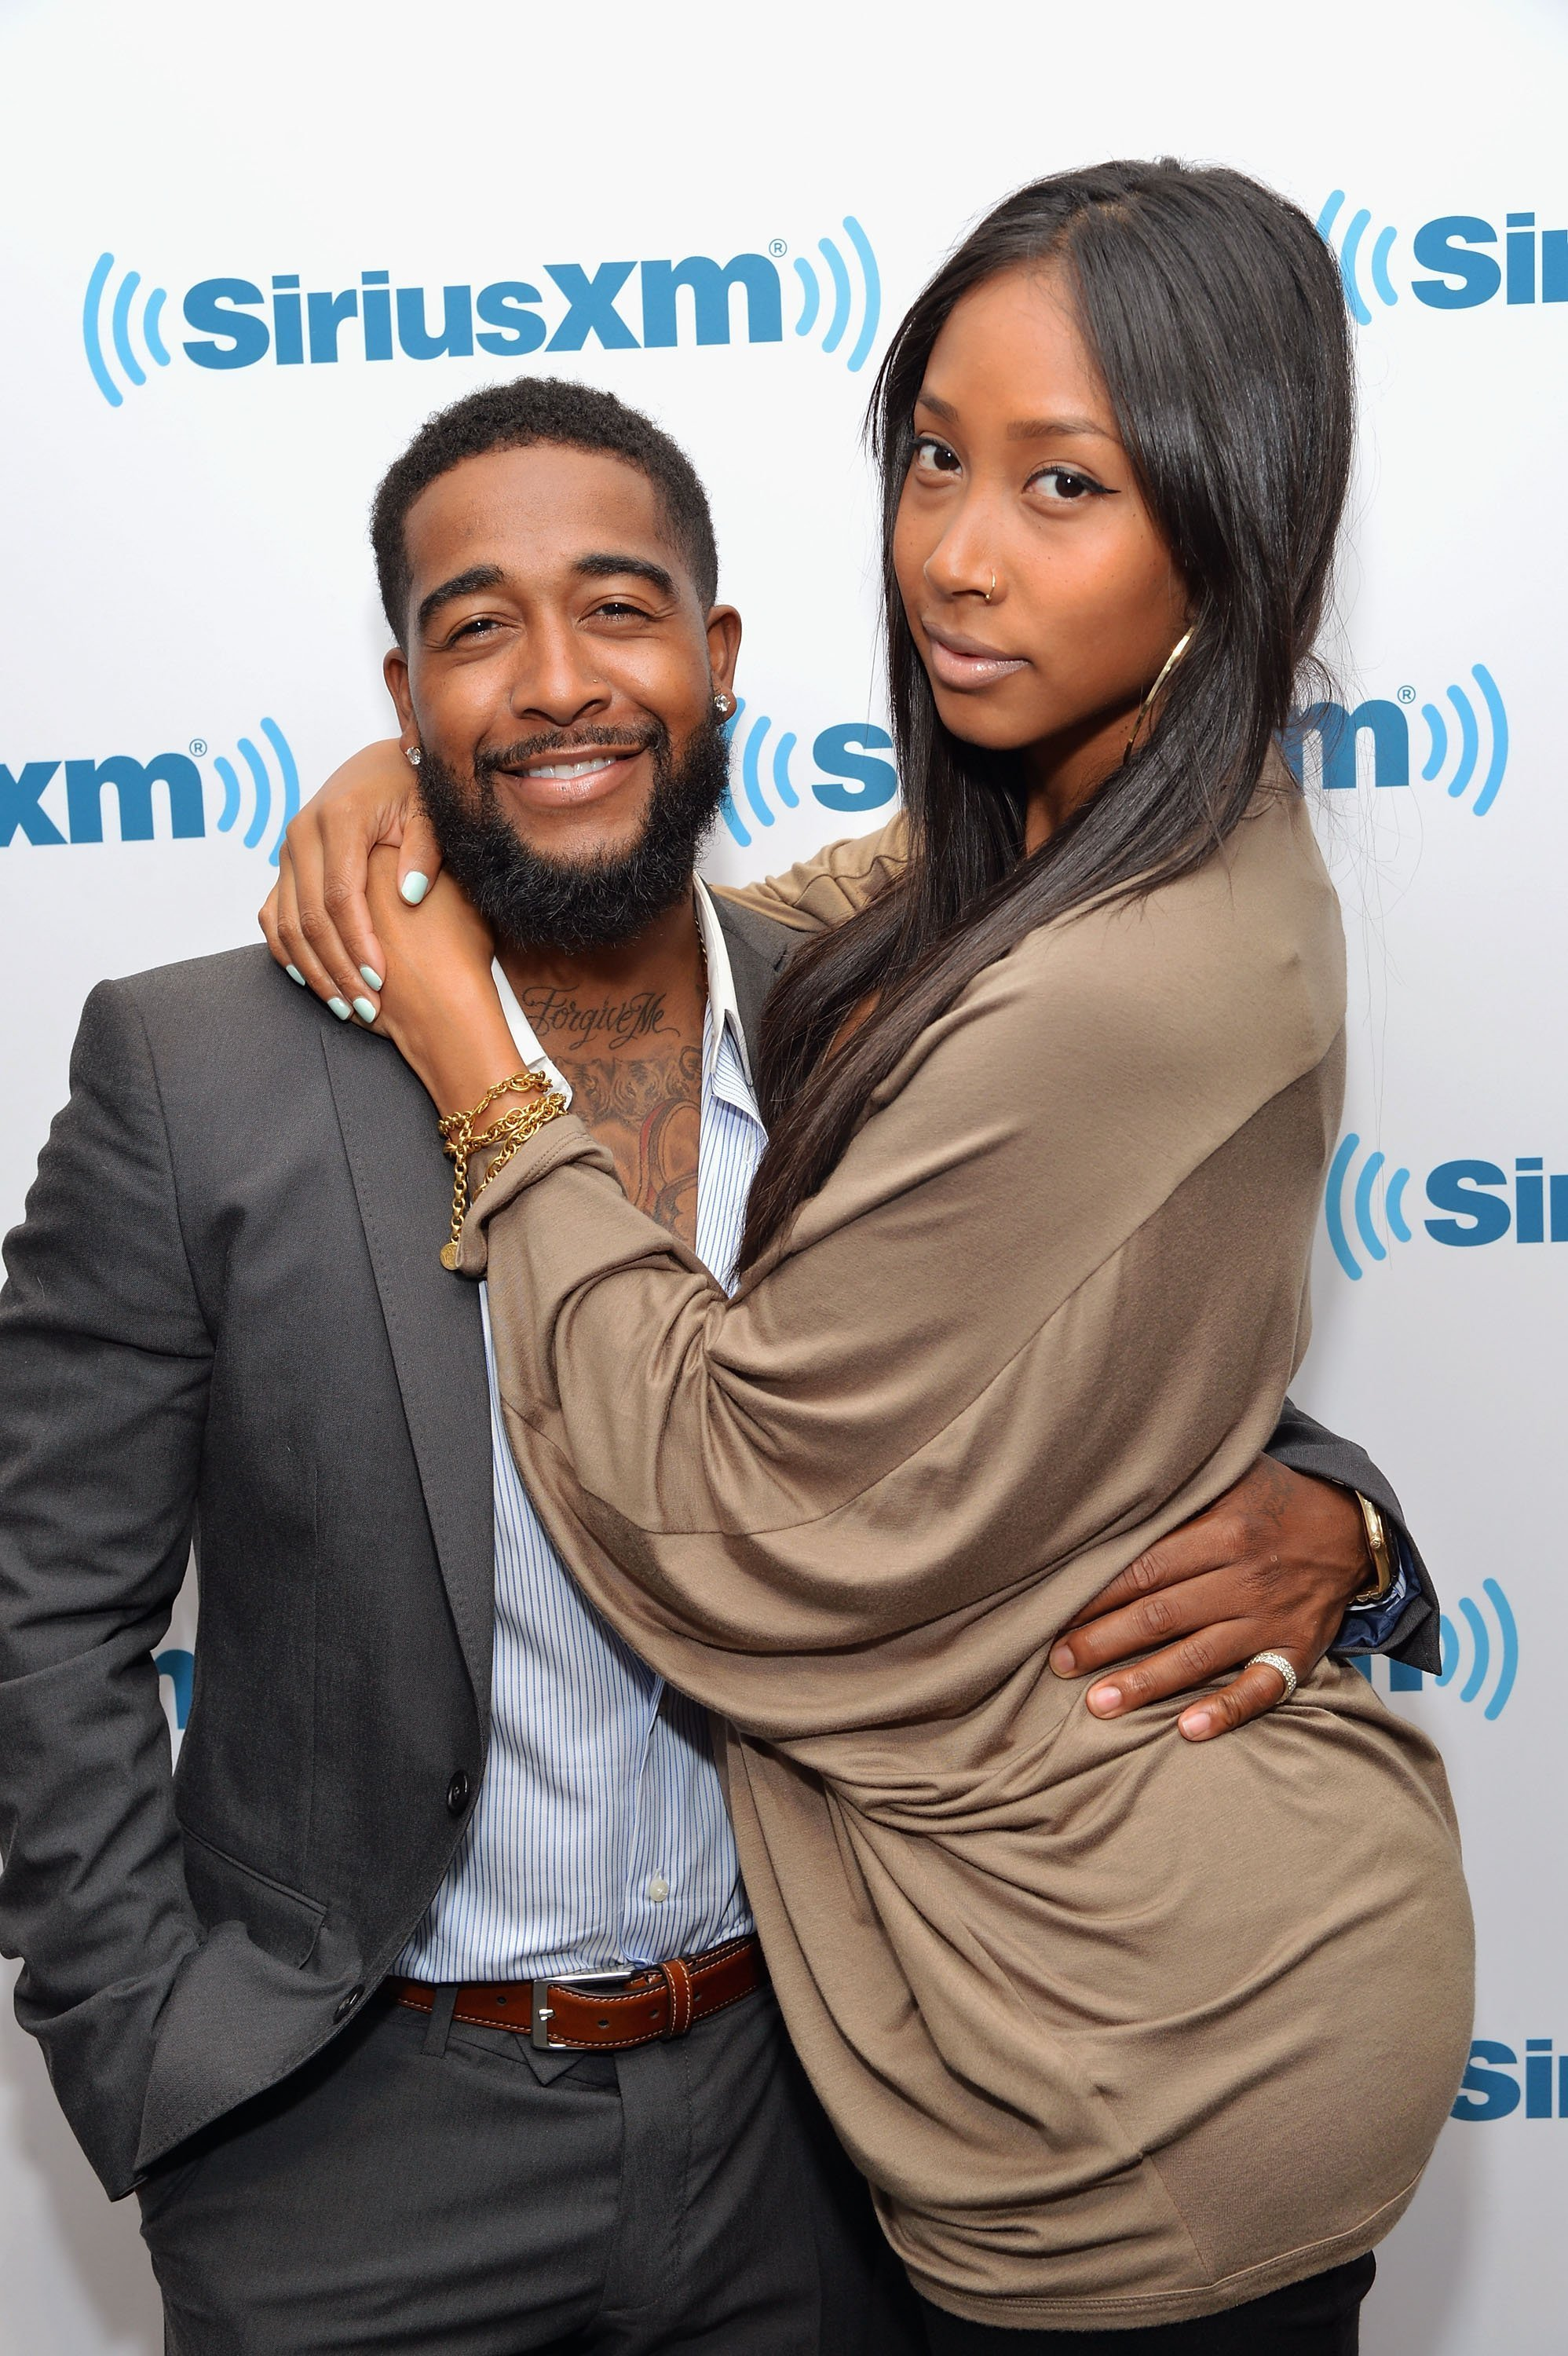 Omarion & Apryl Jones at the SiriusXM Studio in May 2014. | Photo: Getty Images